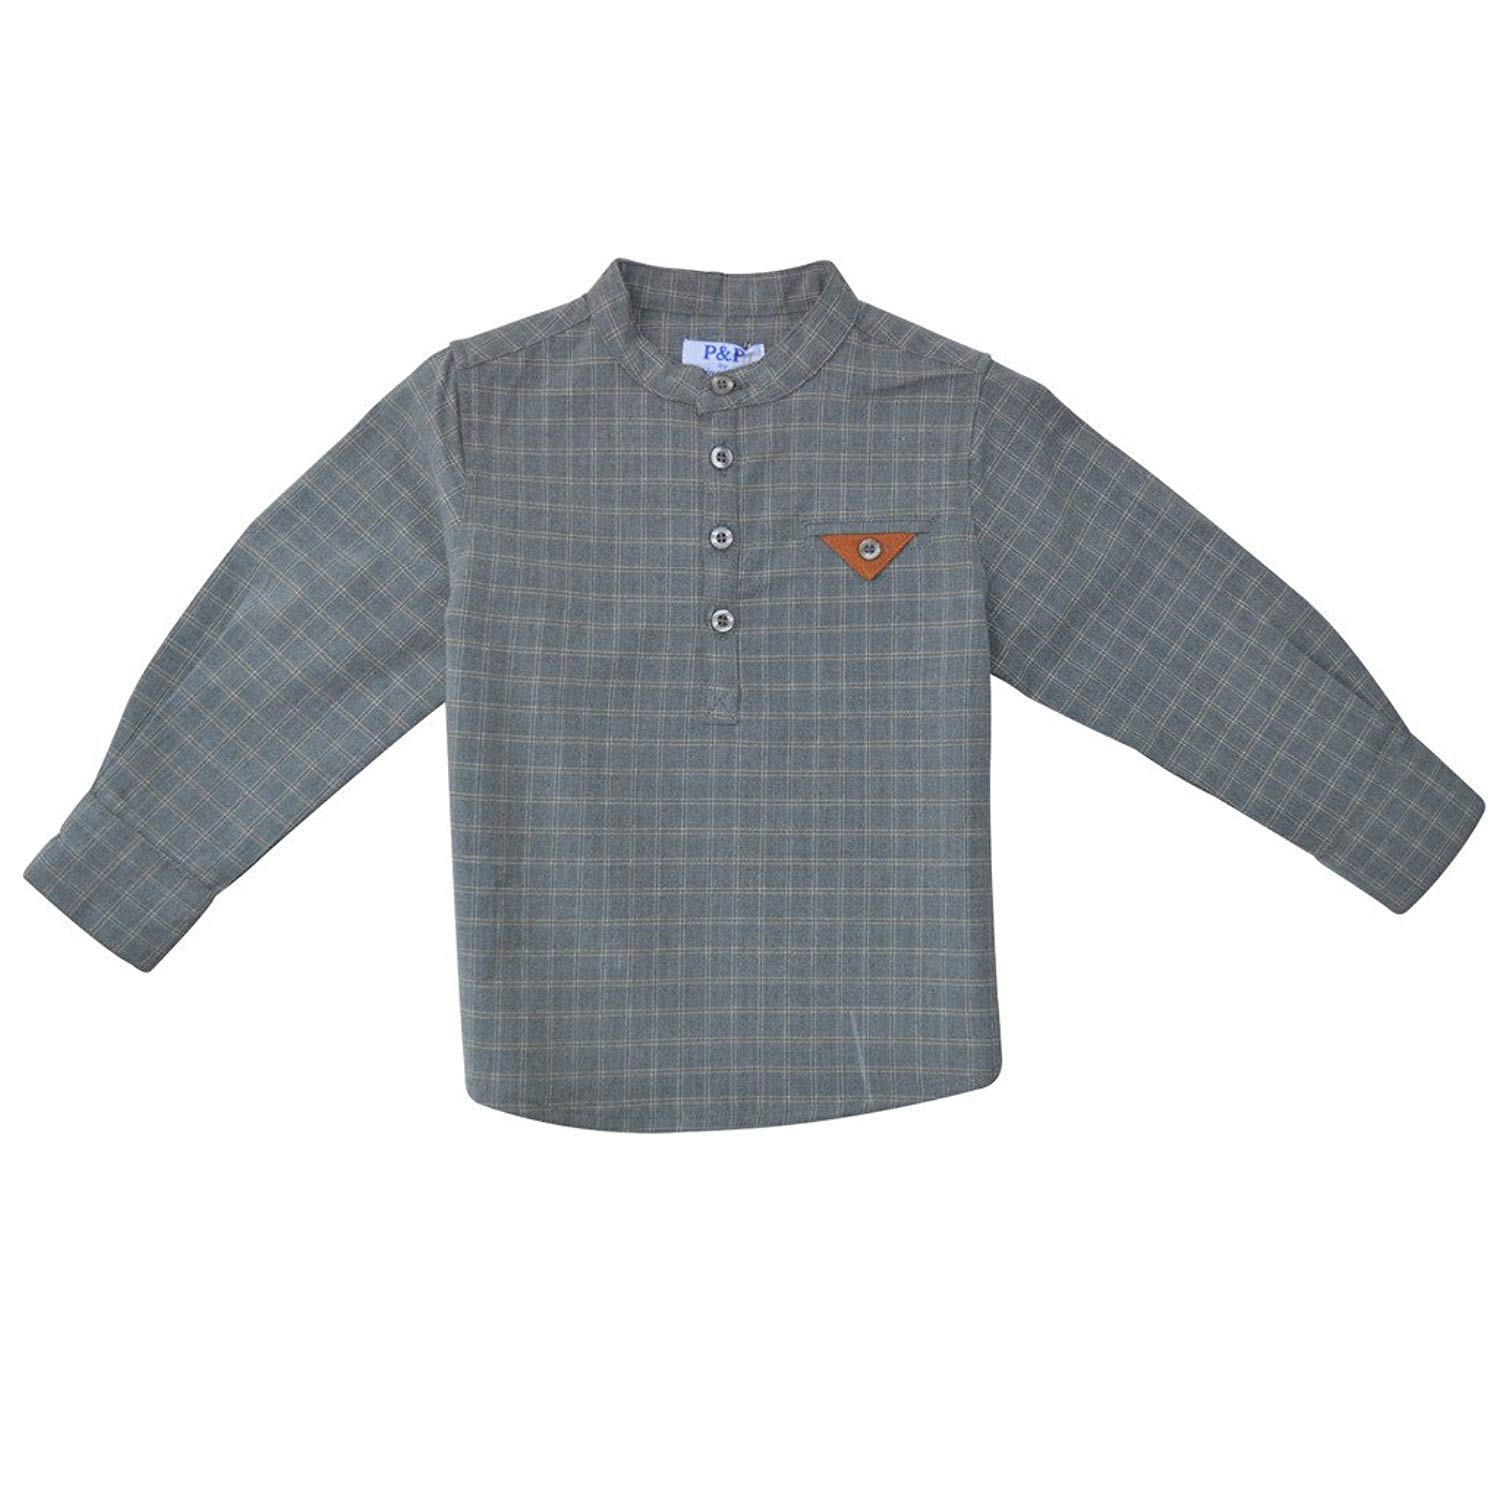 Piccino Piccina Baby Boy's Buttoned Gray Shirt - w/Plaid Design